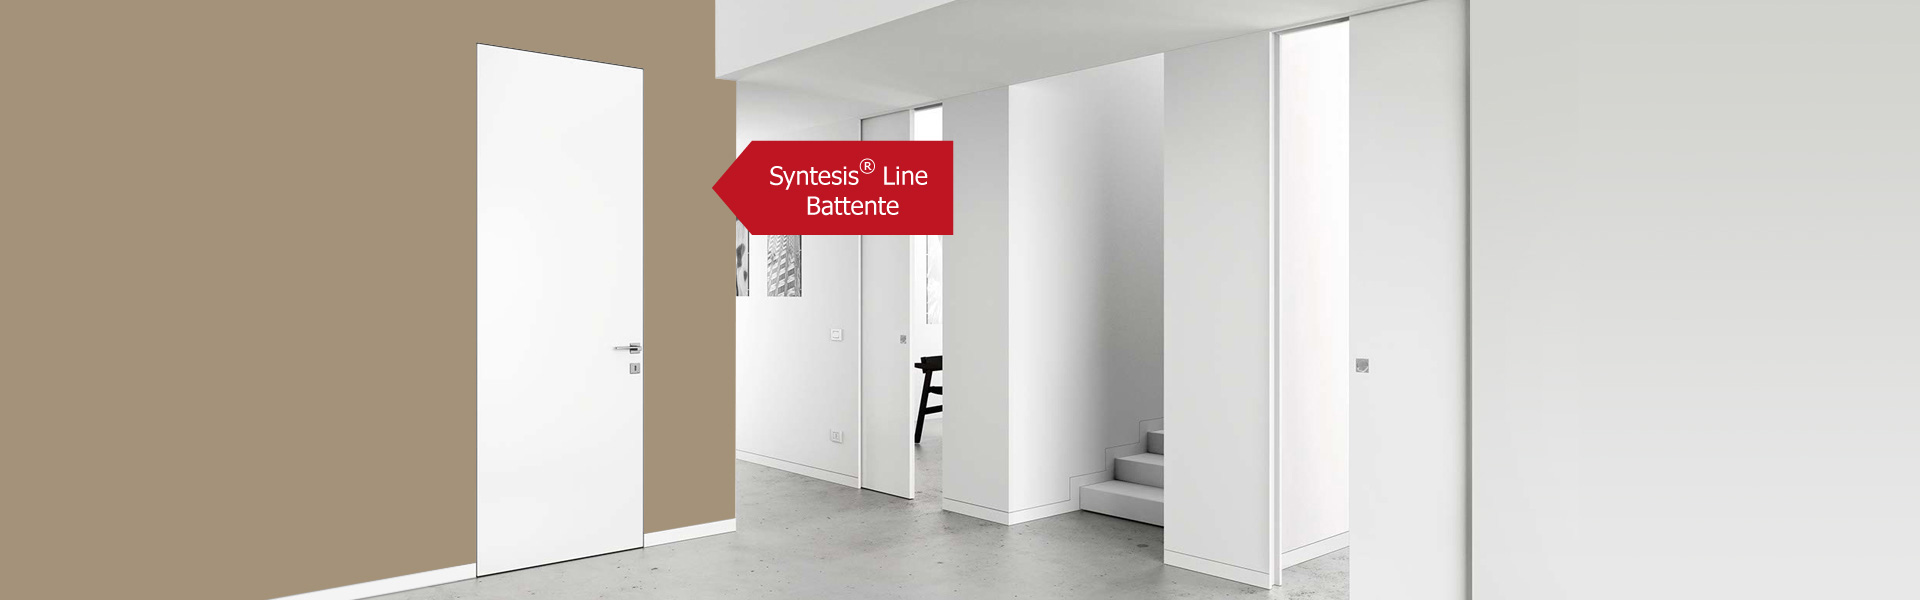 Syntesis® Line Battente